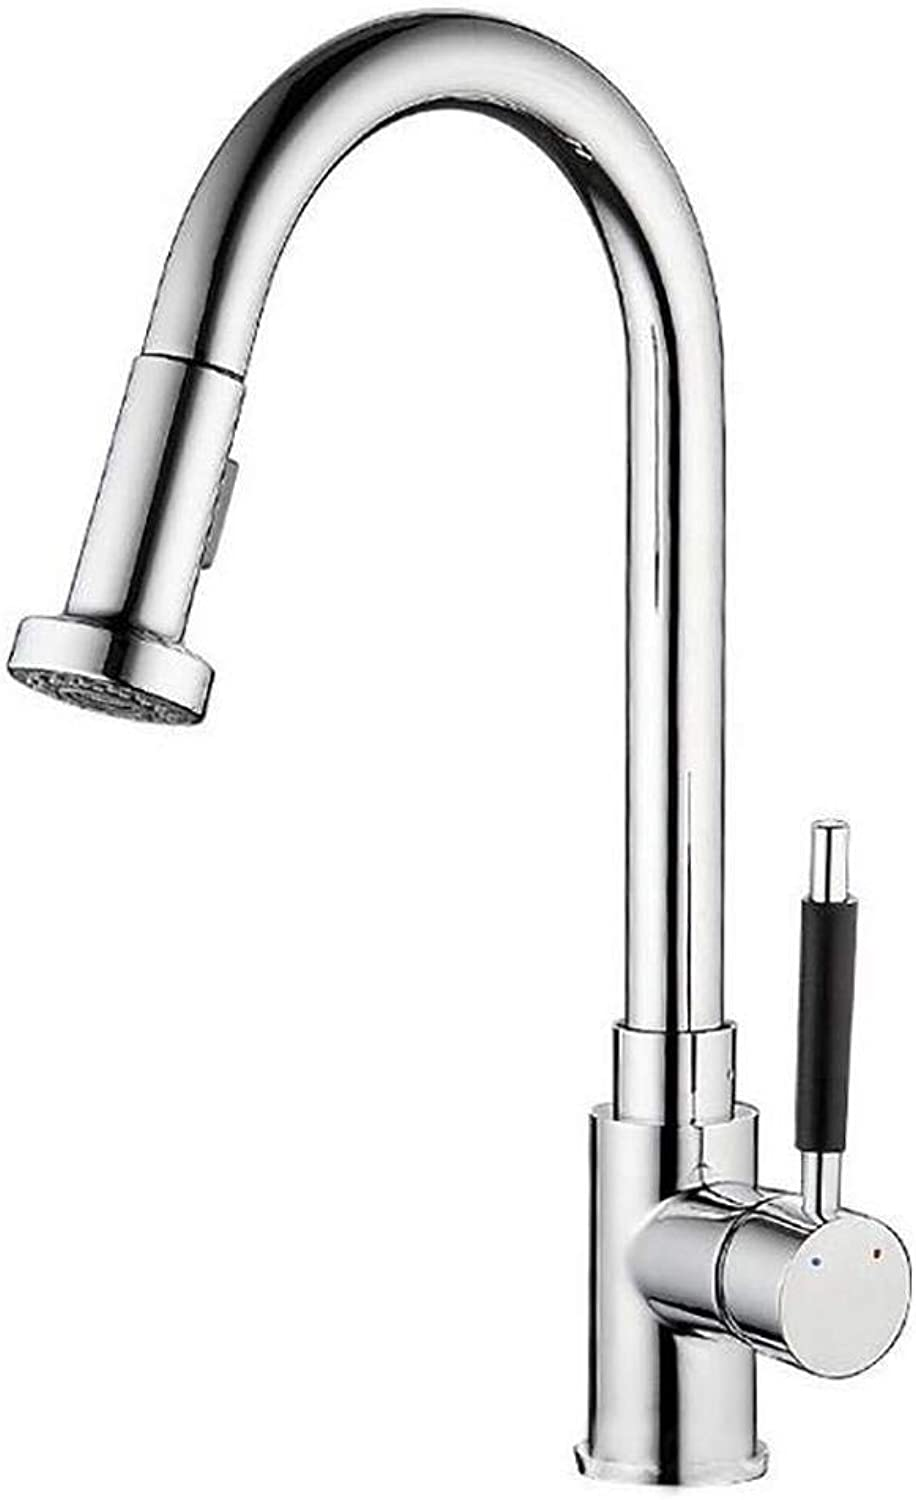 Bathroom Kitchen Sink Faucet,Silver Modern Design Creative Pull-Out 360 Degree Single Handle Cold and Hot Mixing Faucet.